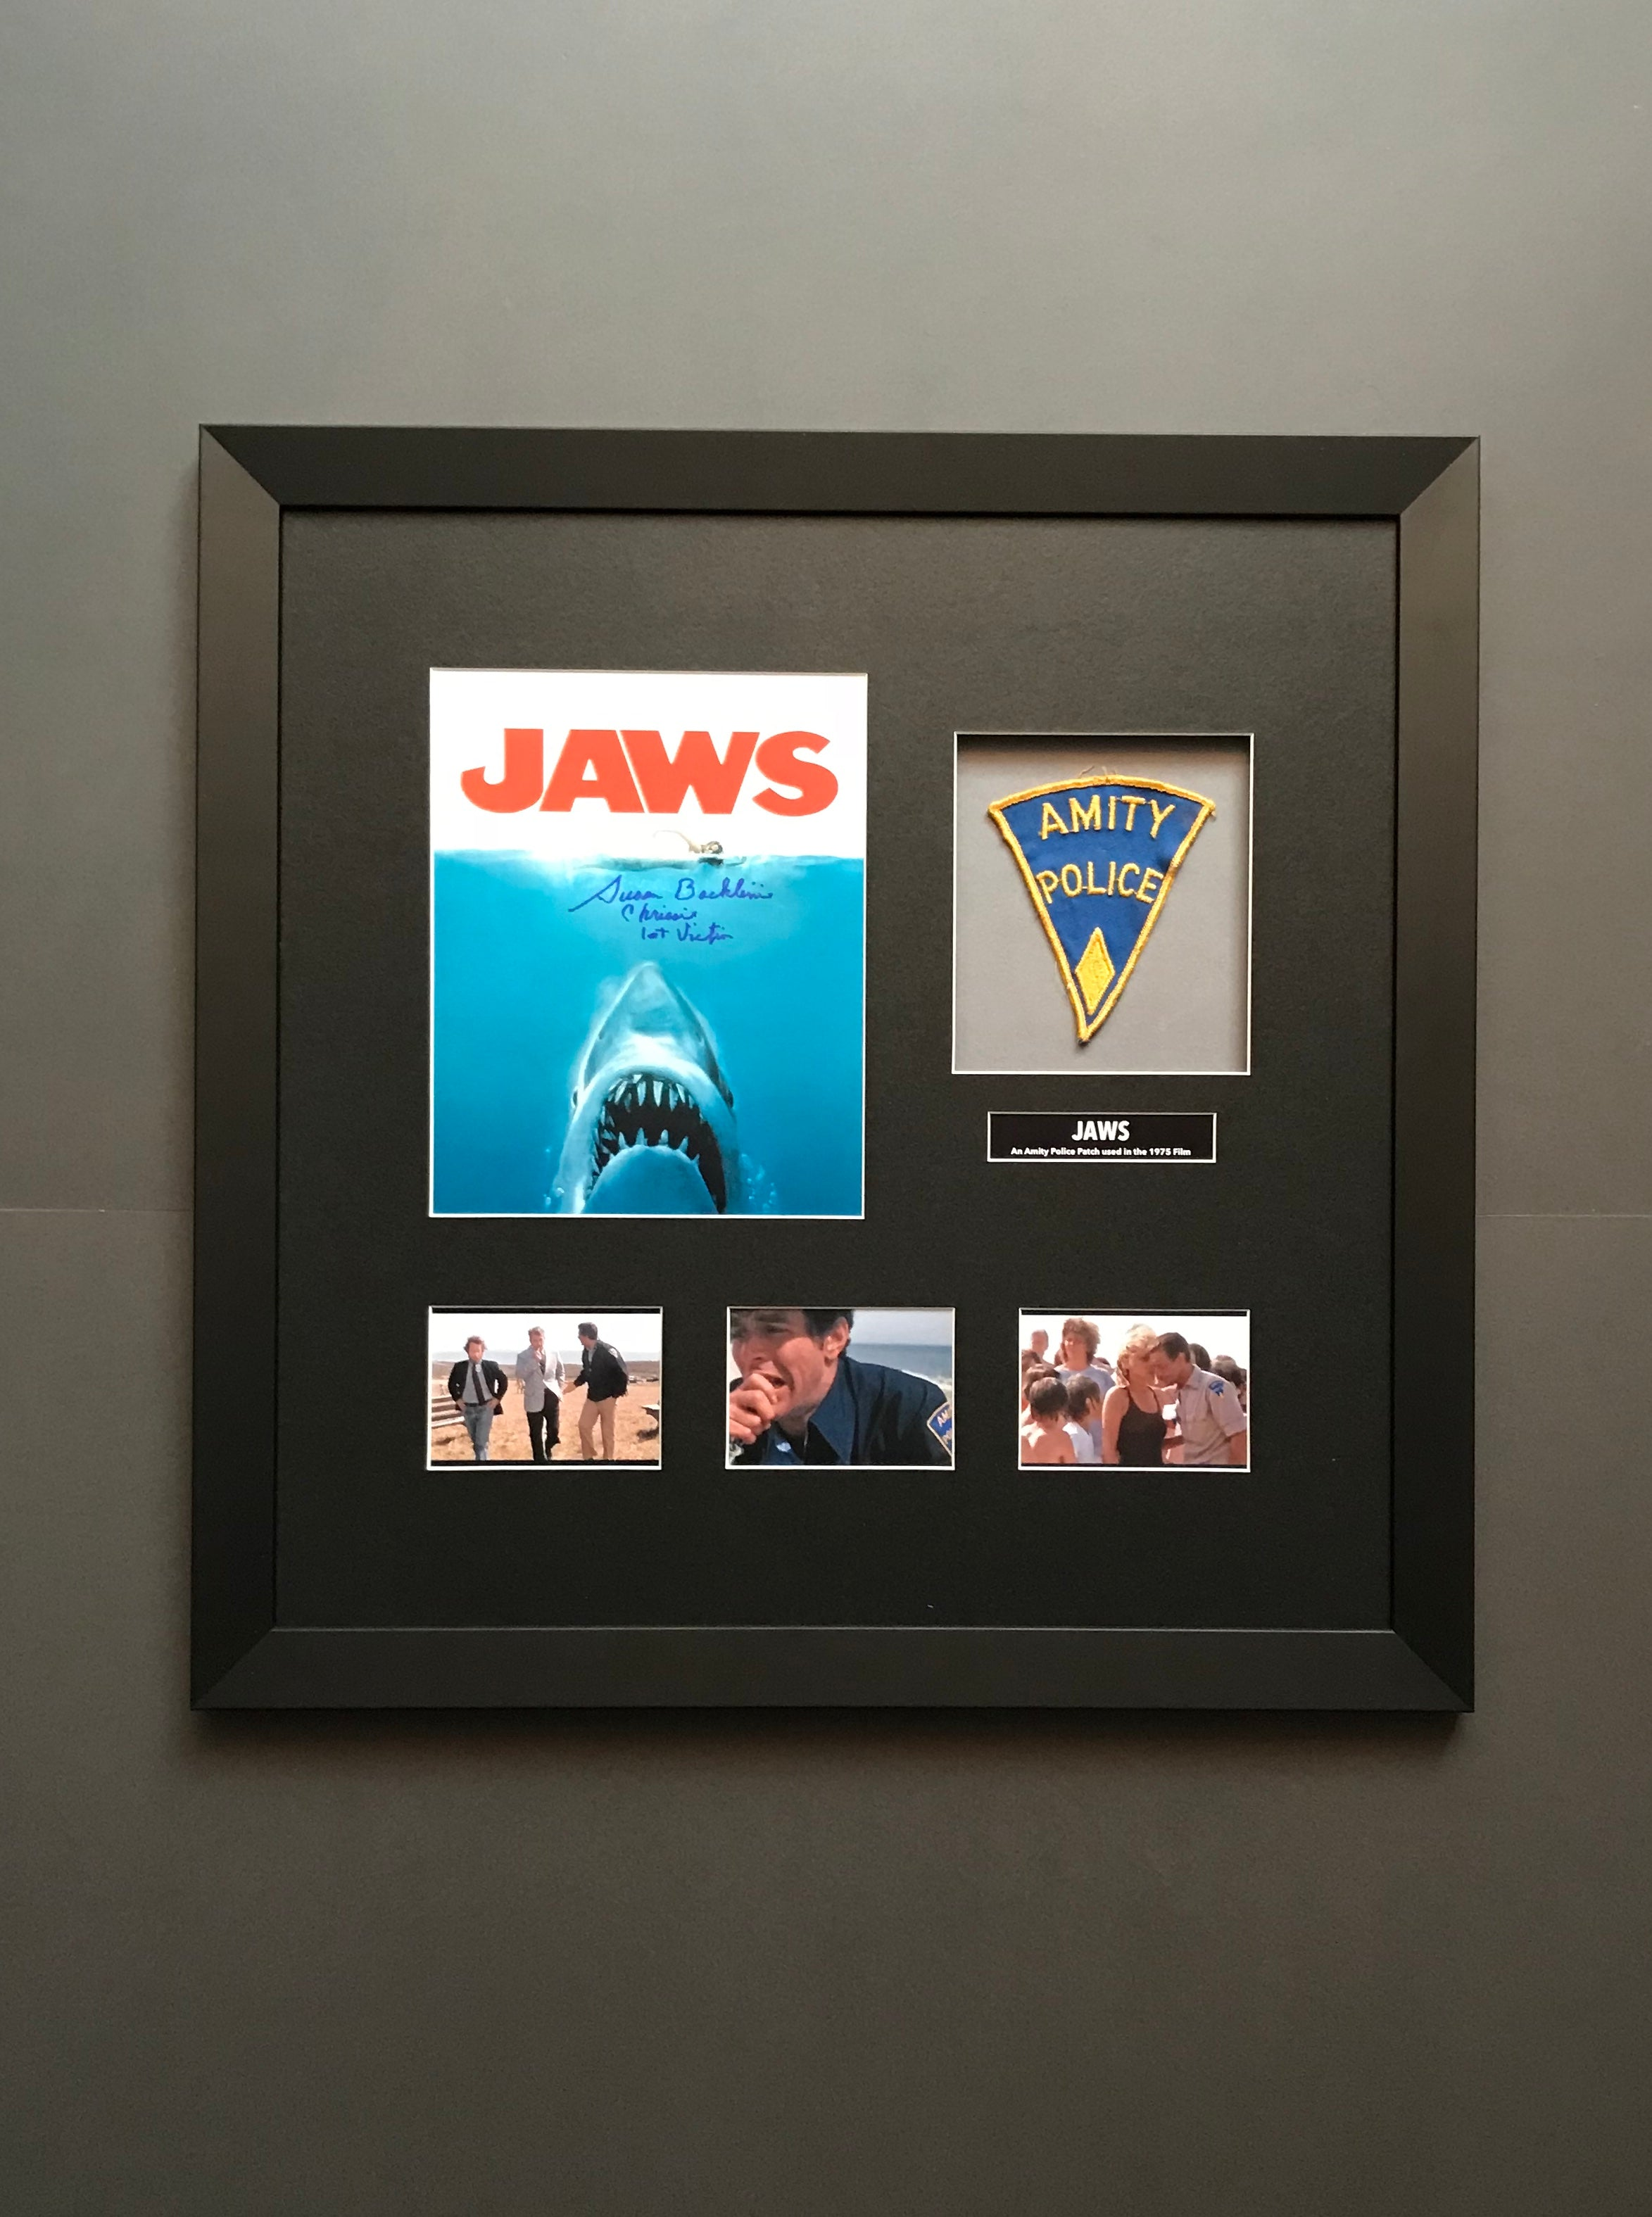 Jaws (1975) - A Framed 'Amity Police' Uniform Patch (SOLD)